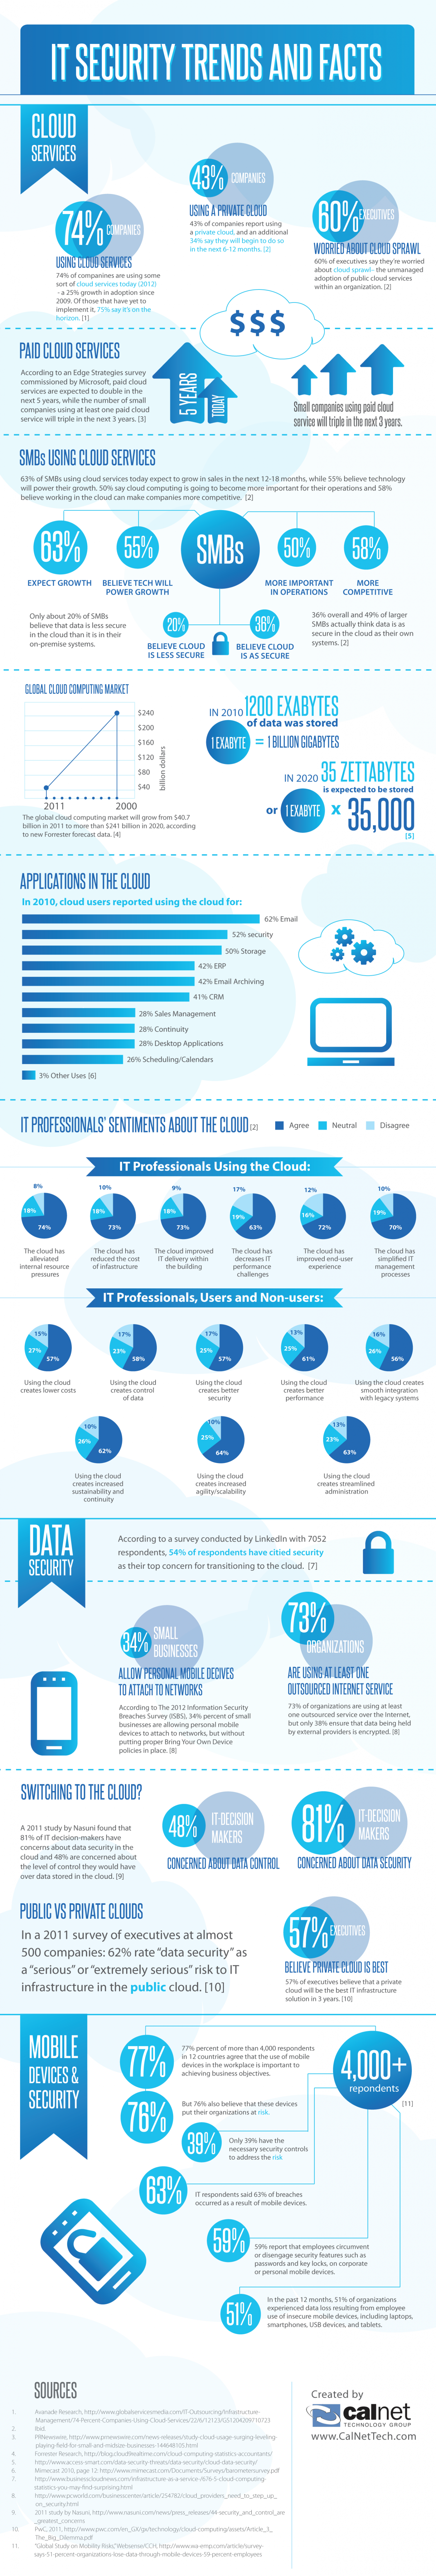 IT SECURITY TRENDS Infographic